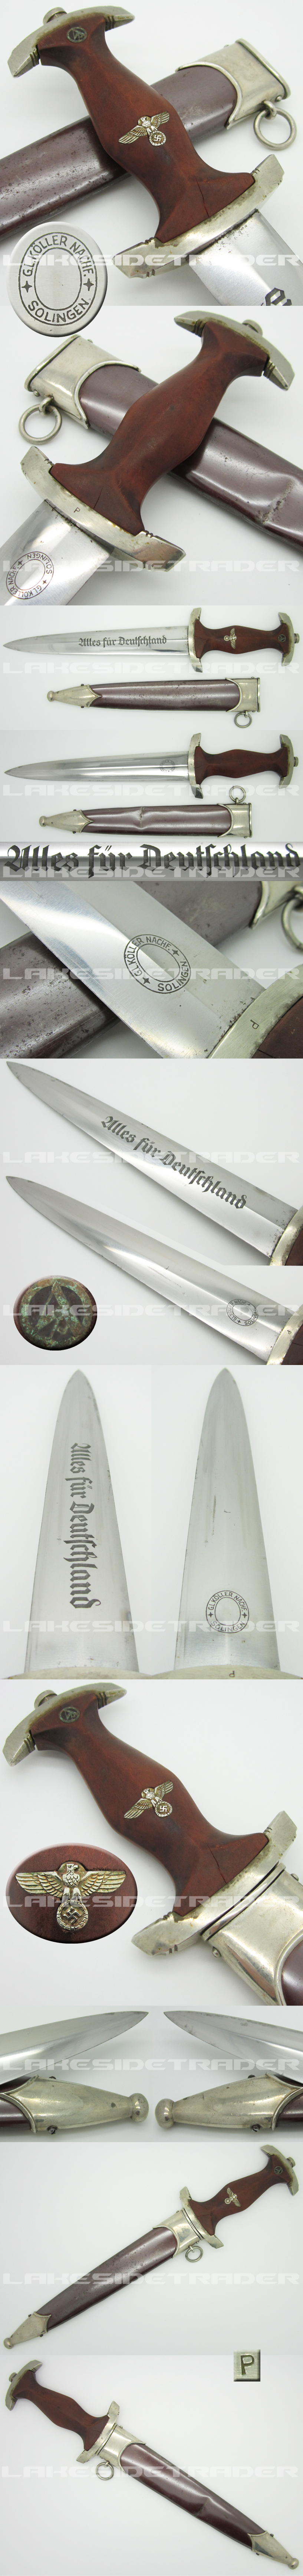 Early SA Dagger by Köller Nachf